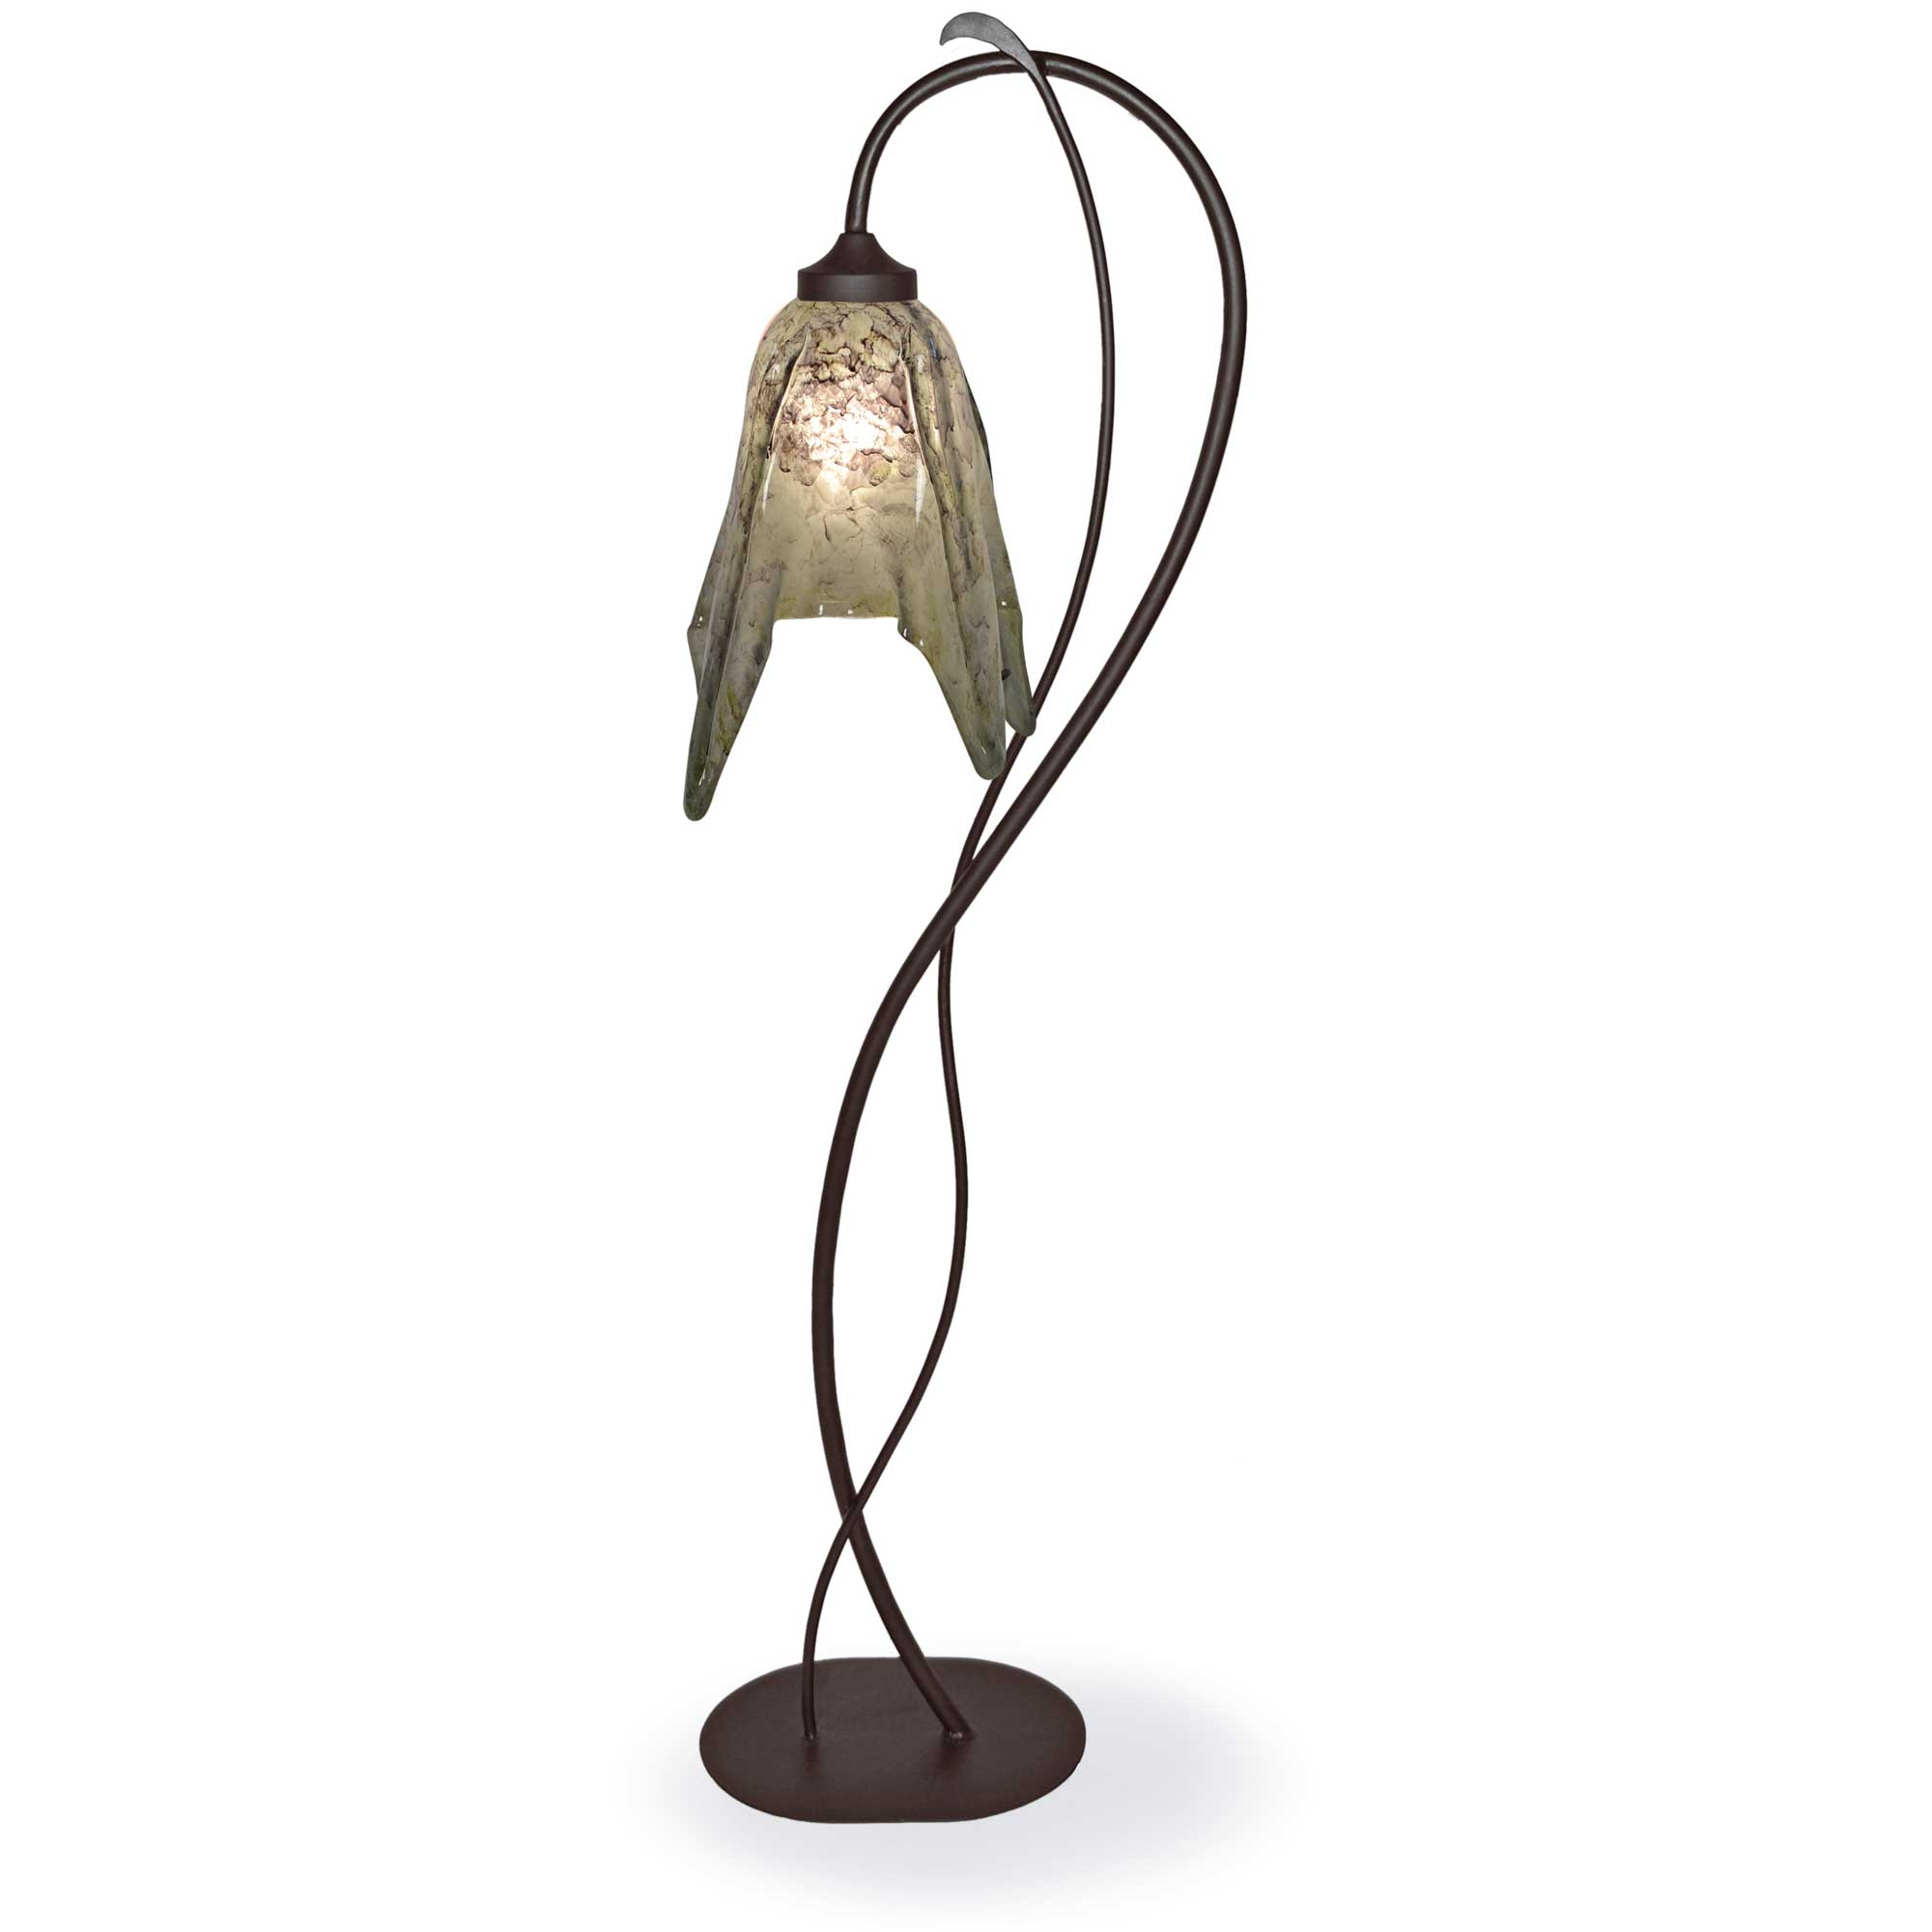 Pictured is our Contemporary style wrought iron Wild Vine Floor Lamp with  Glass Shade hand-